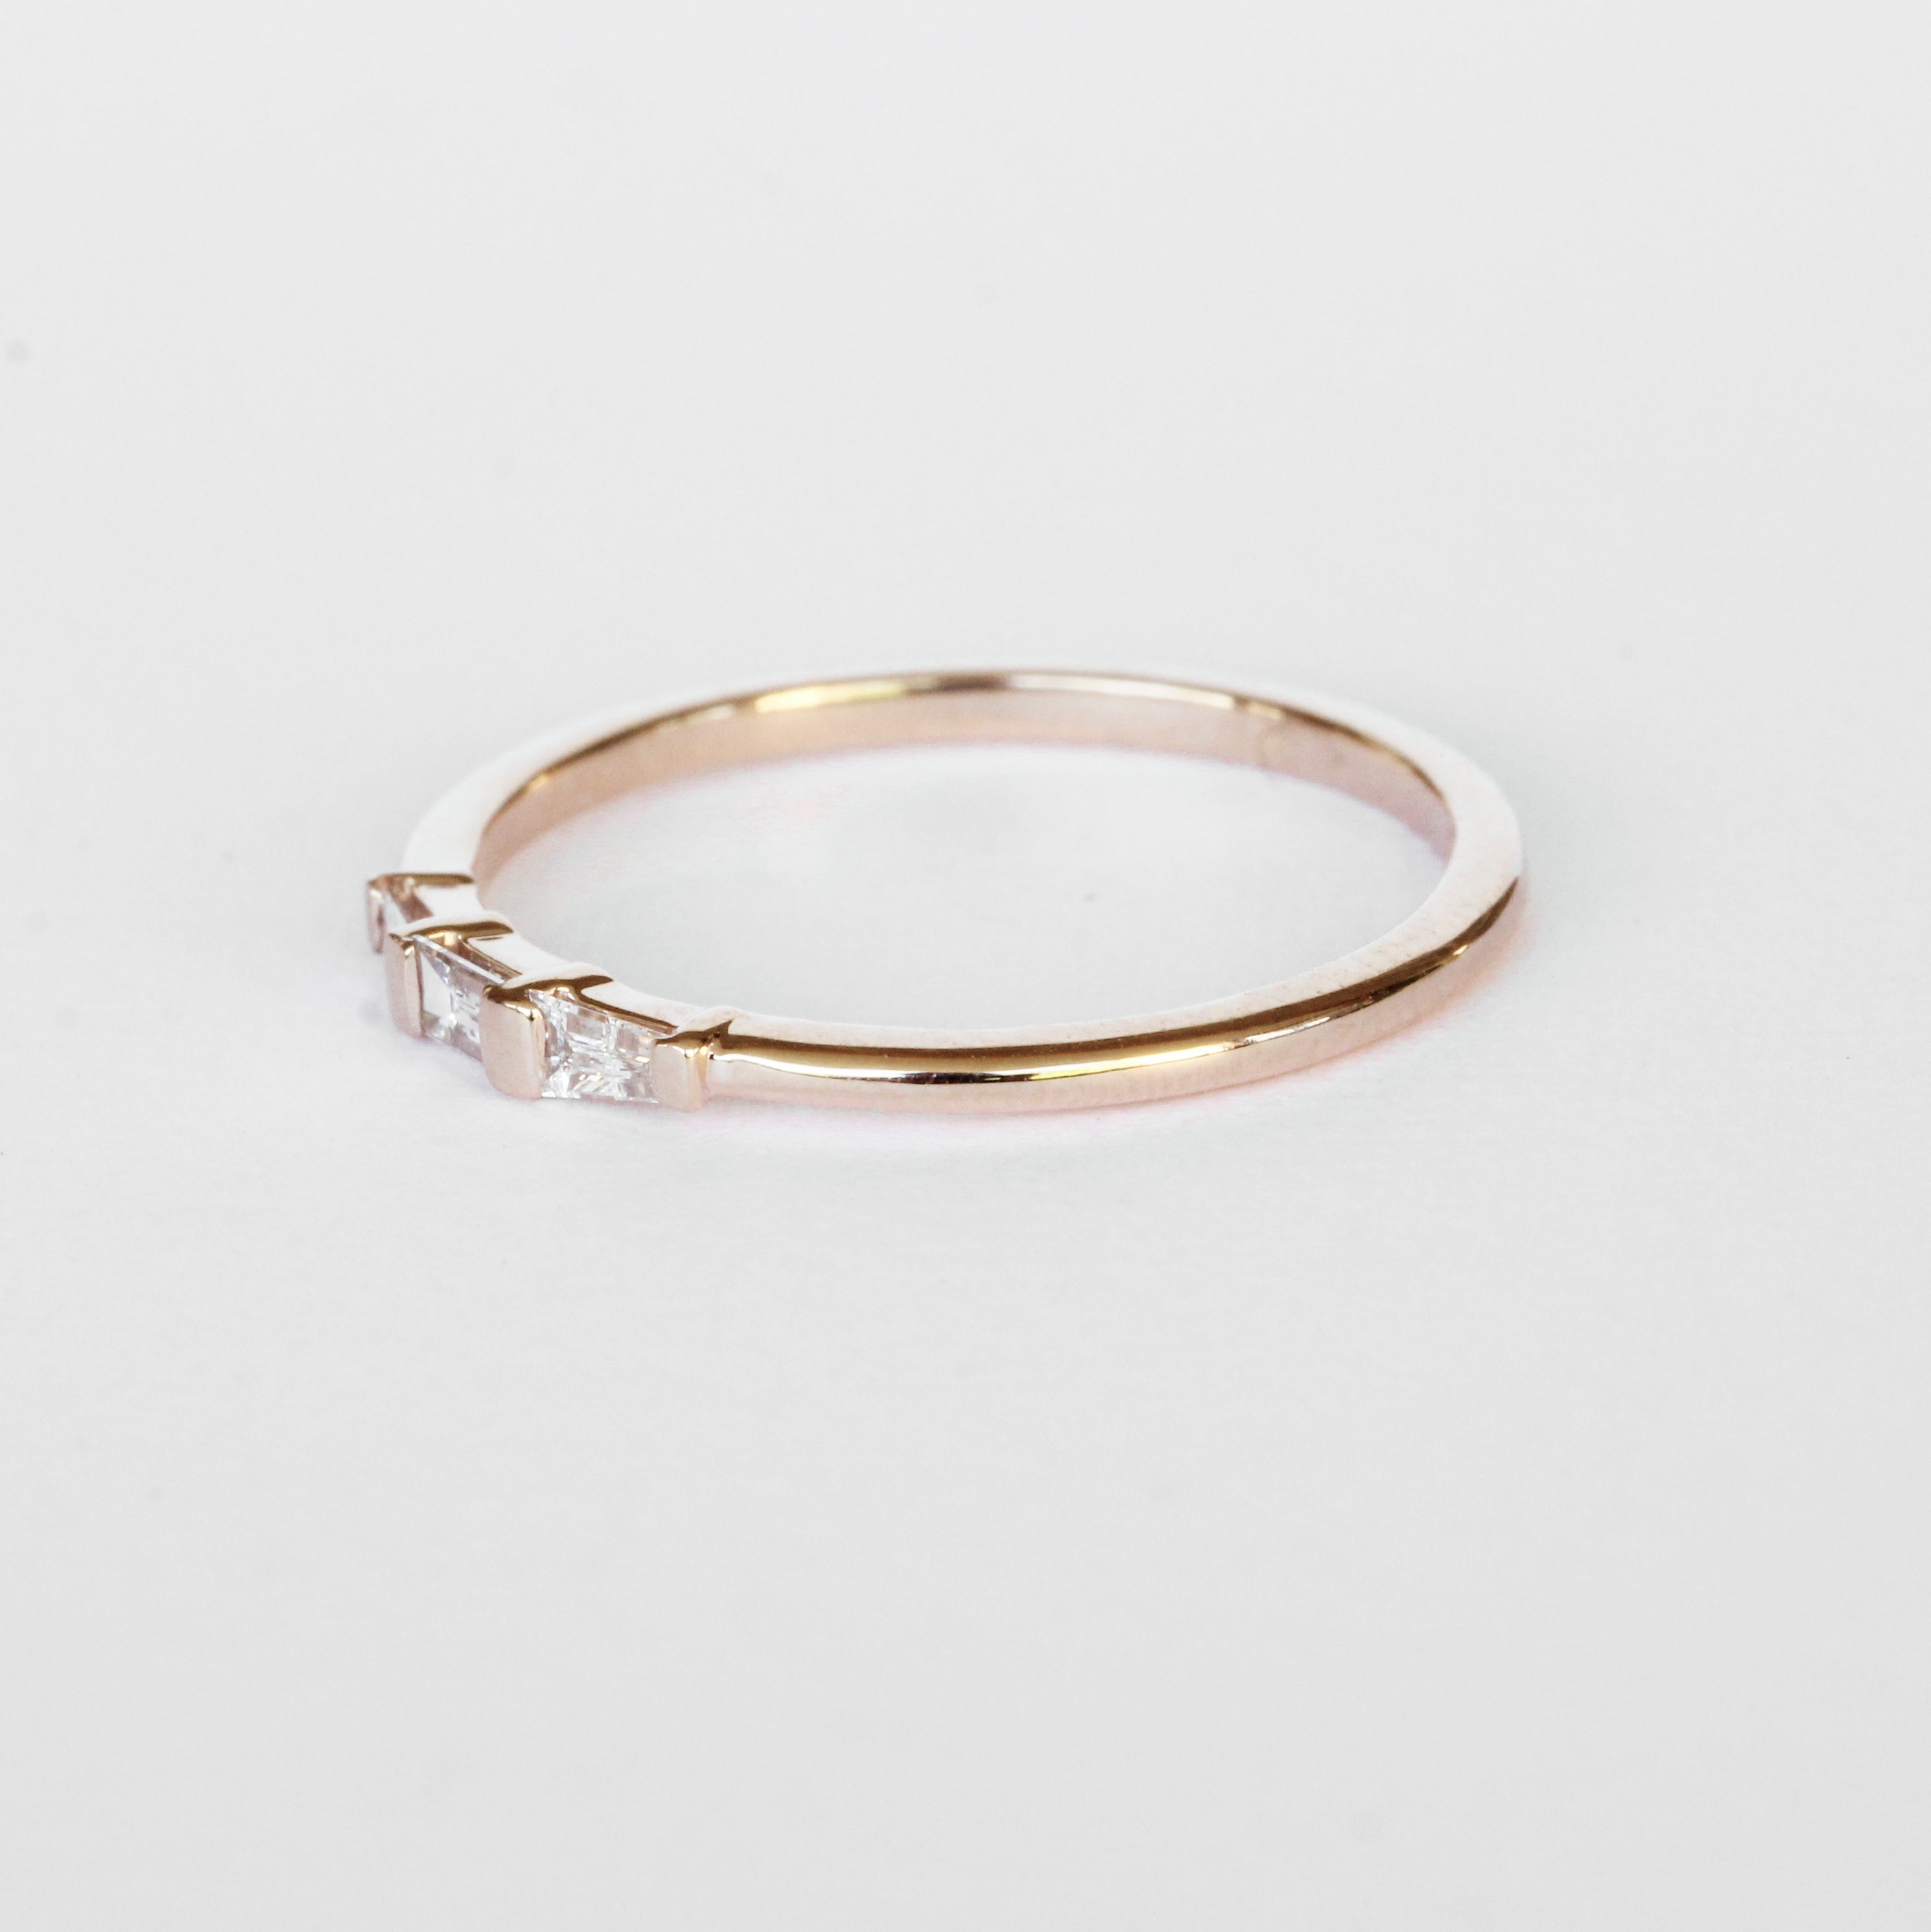 Woodsley Baguette Band Stackable Ring in Your Choice of 14k Gold - Salt & Pepper Celestial Diamond Engagement Rings and Wedding Bands  by Midwinter Co.